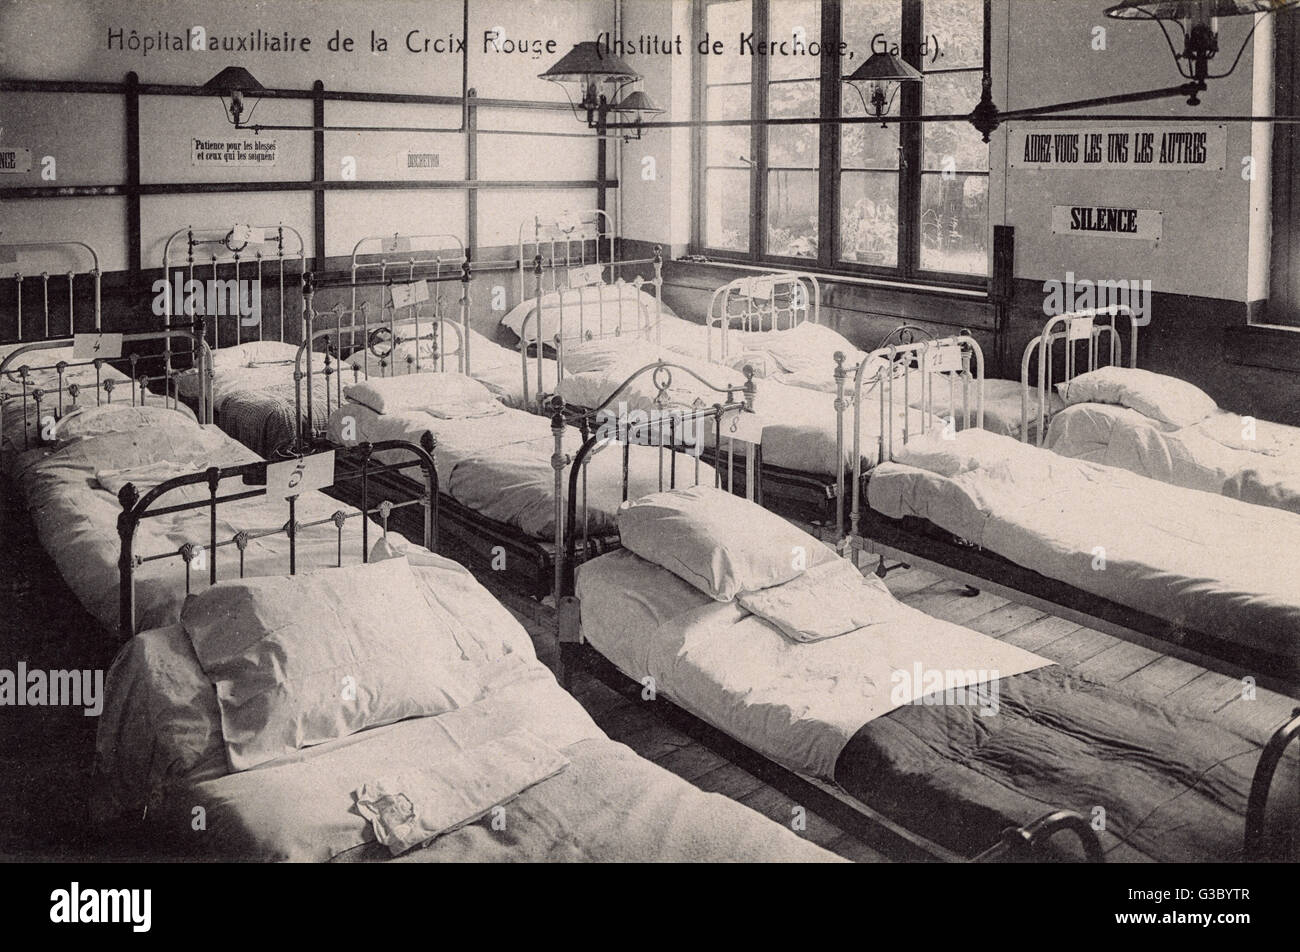 Scene inside the Auxiliary Red Cross hospital (Kerchove Institute), Ghent, Belgium, during the First World War. - Stock Image